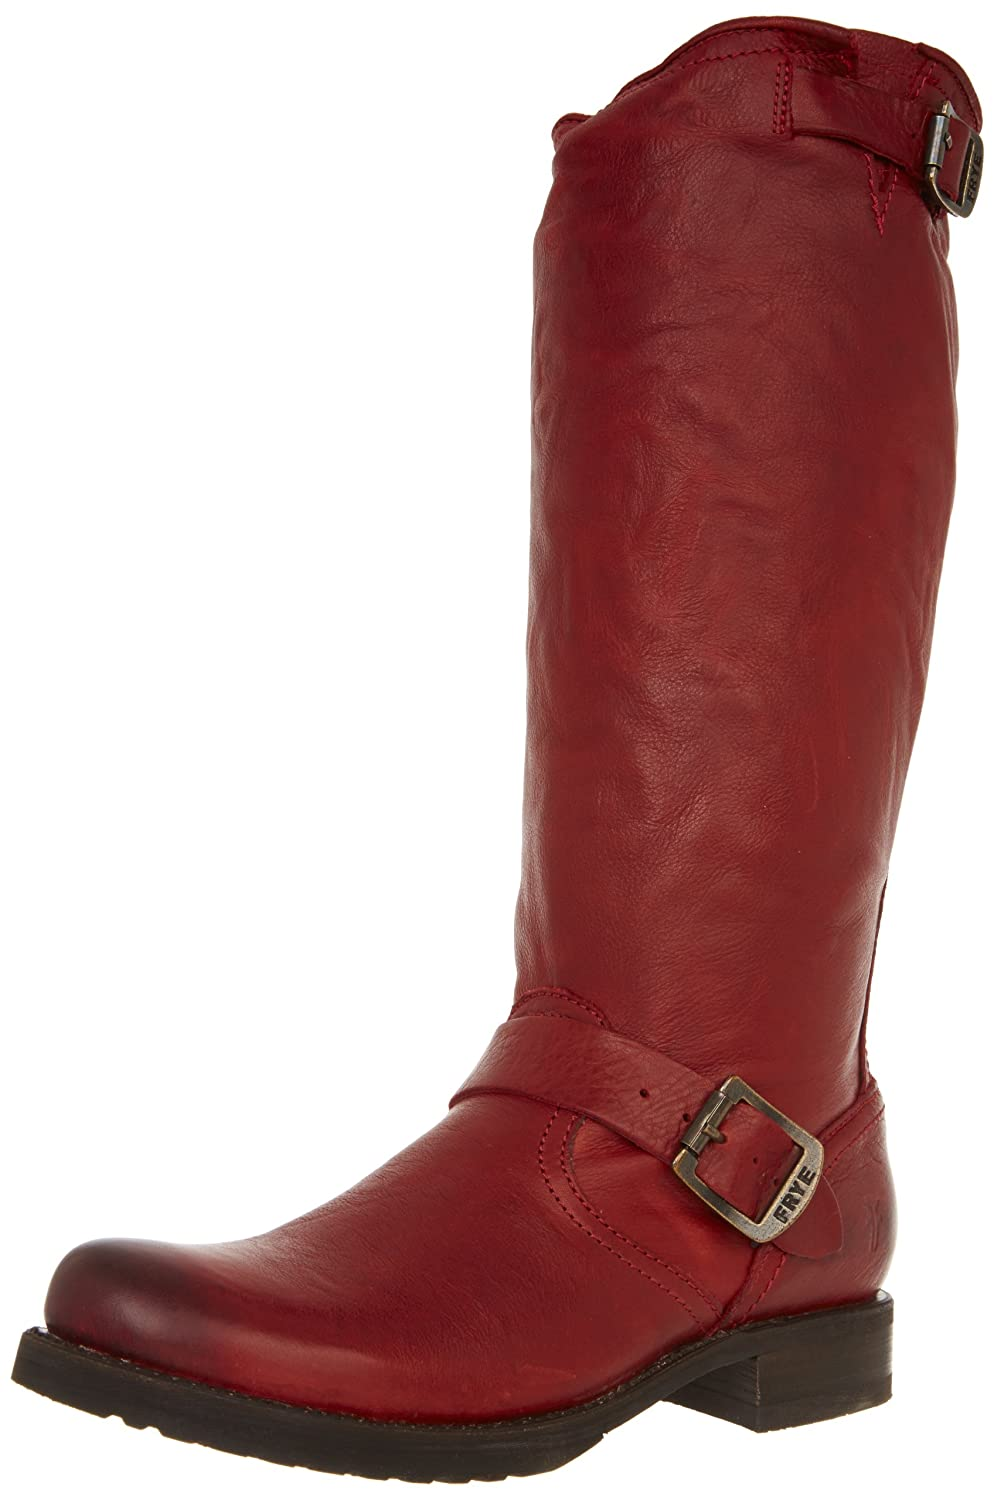 FRYE Women's Veronica Slouch Boot B008BULITI 10 B(M) US|Burnt Red Soft Vintage Leather-76602